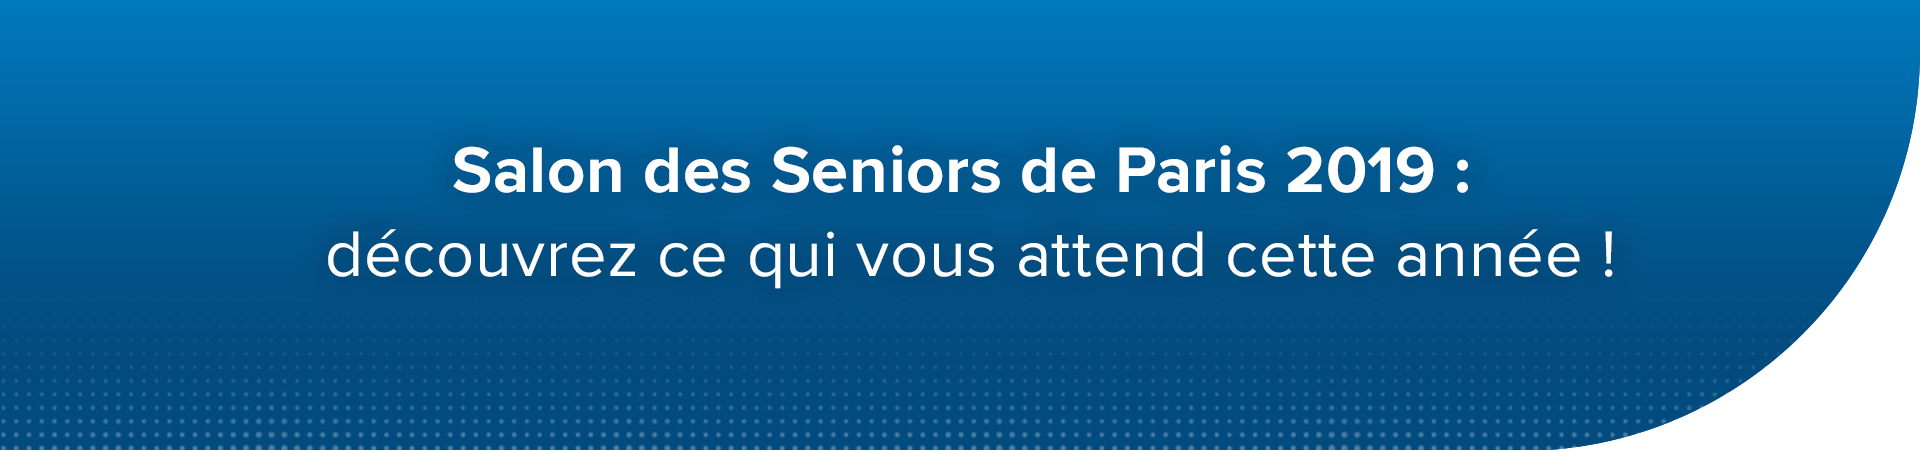 le programme du salon seniors 2019 paris